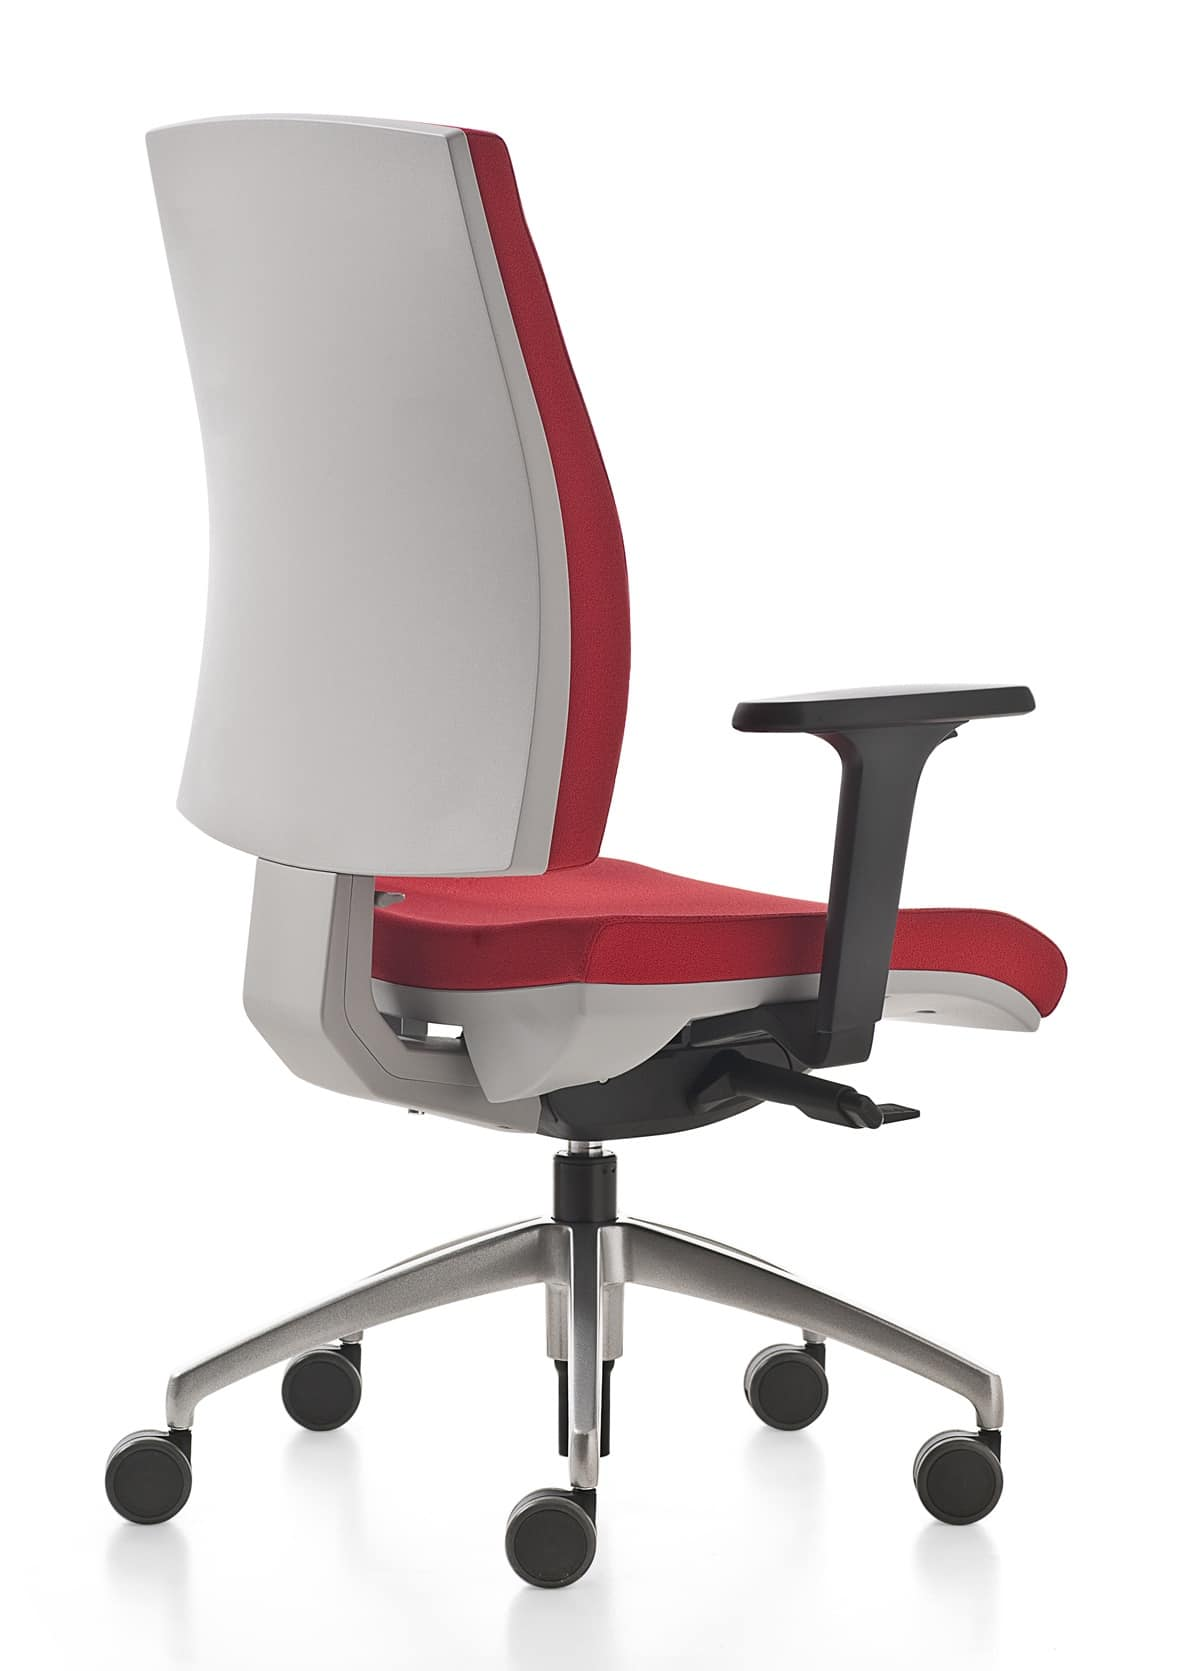 Kubika, Swivel office chair, with adjustable lumbar support